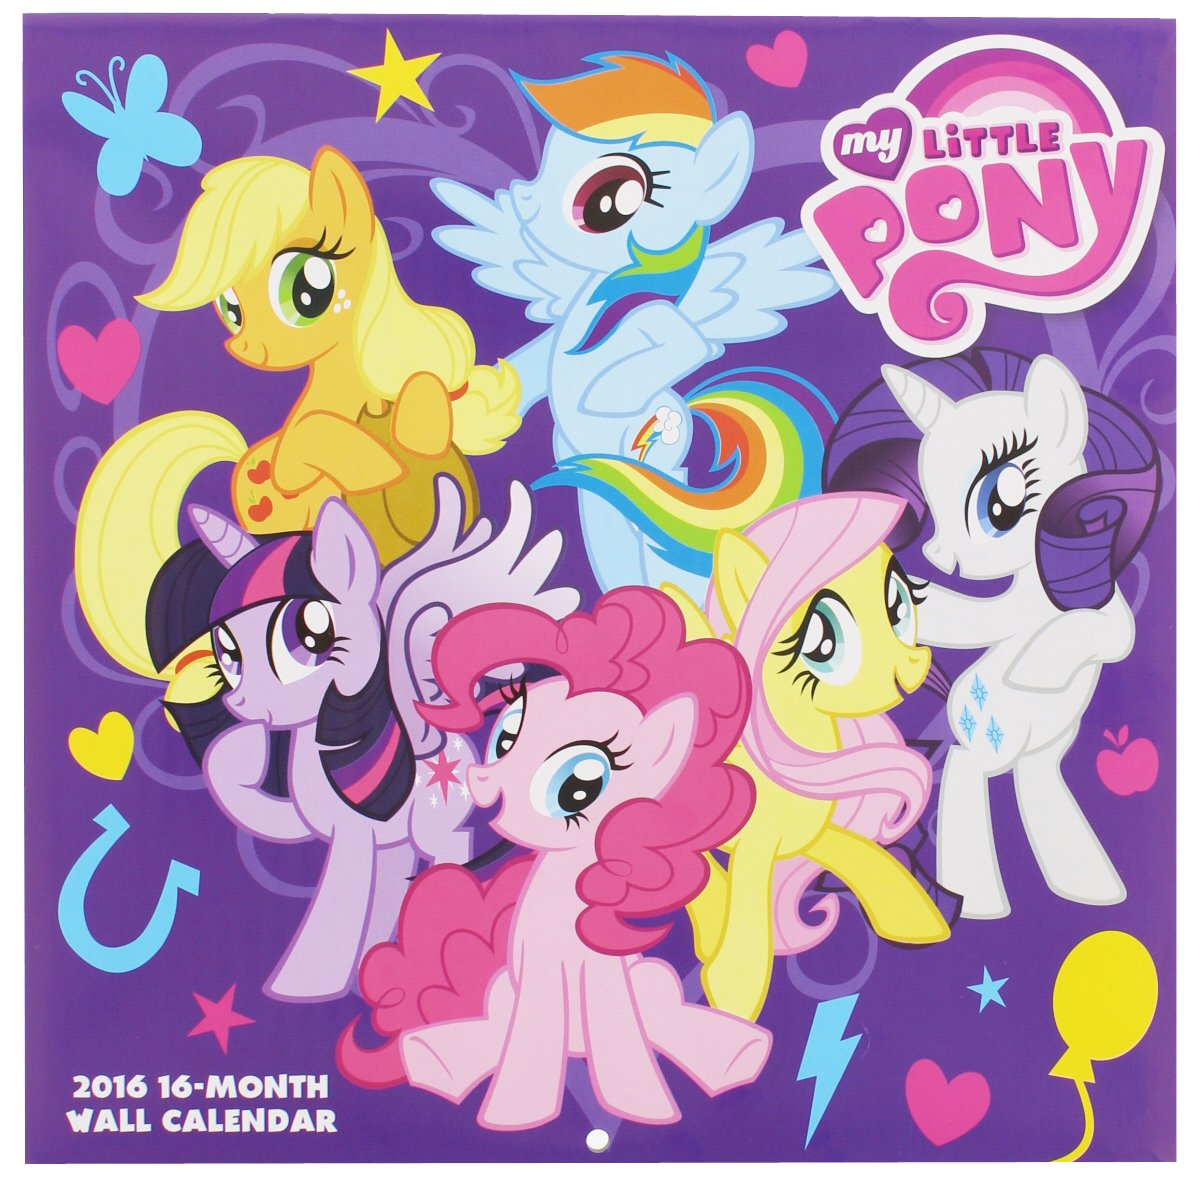 My Little Pony 2016 Square Wall Calendar (12 Months)